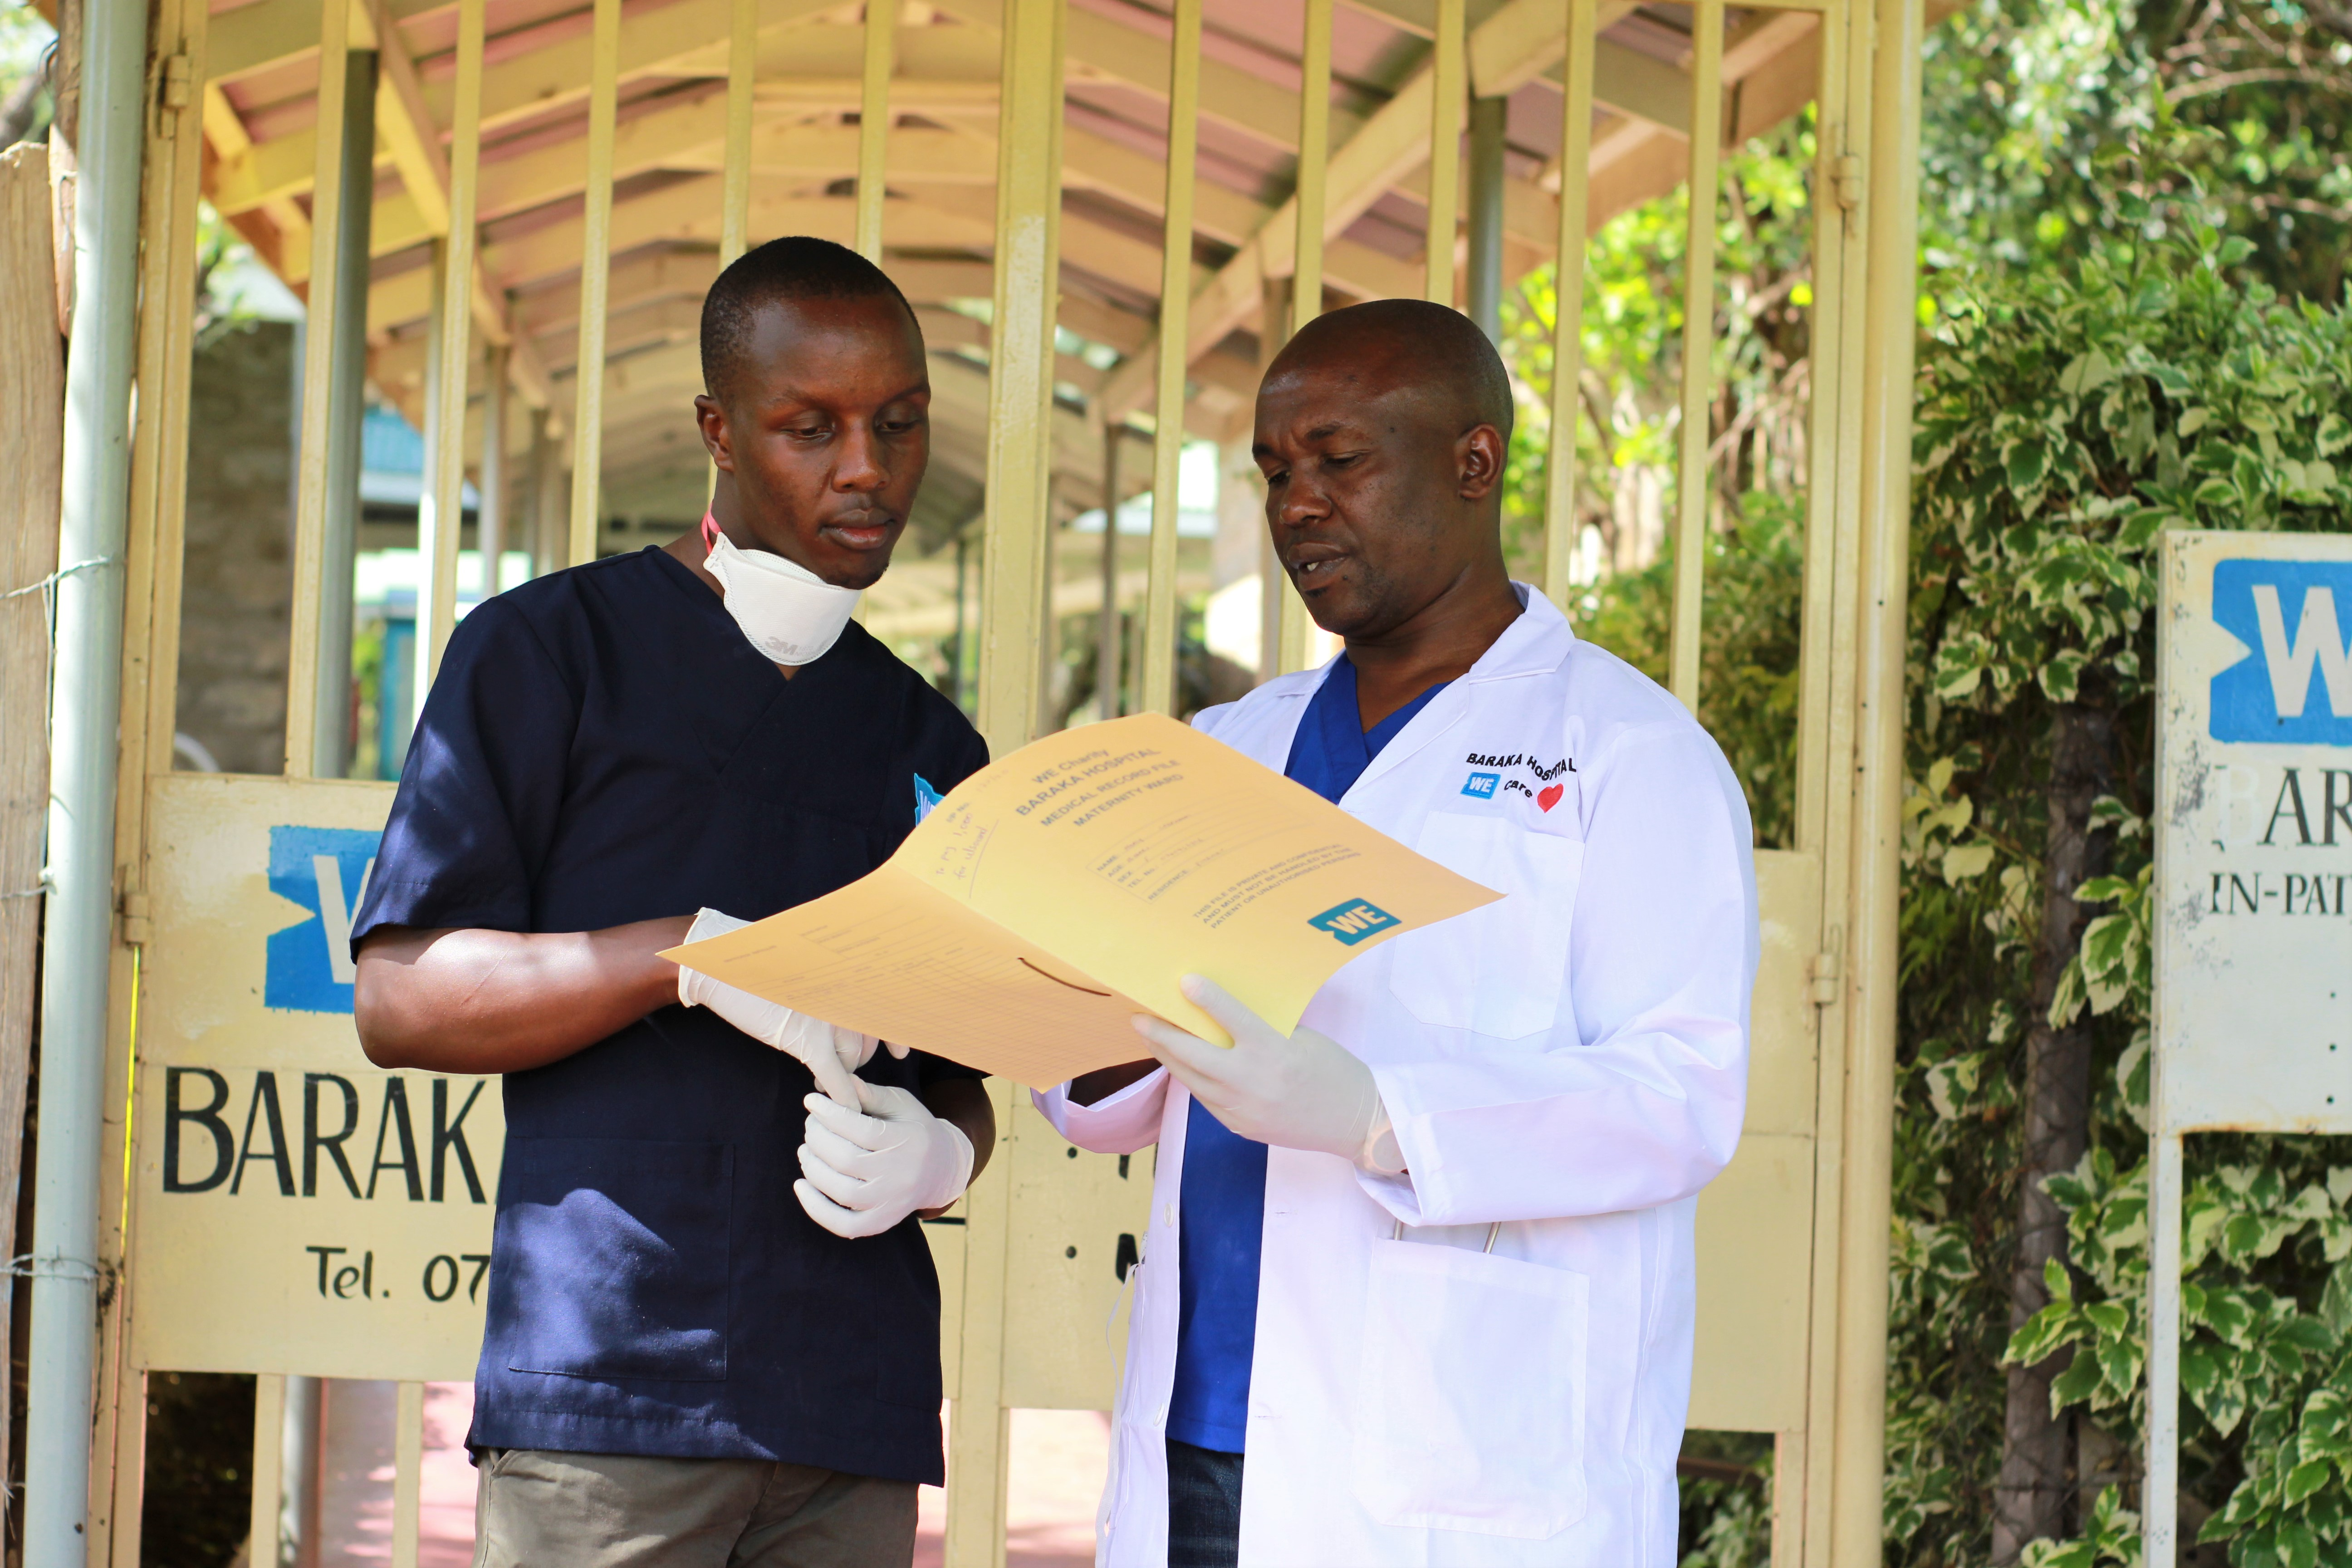 Joseph Gachira, WE Charity's Associate Director for Health, is helping to lead the organization's strategy against the deadly virus.